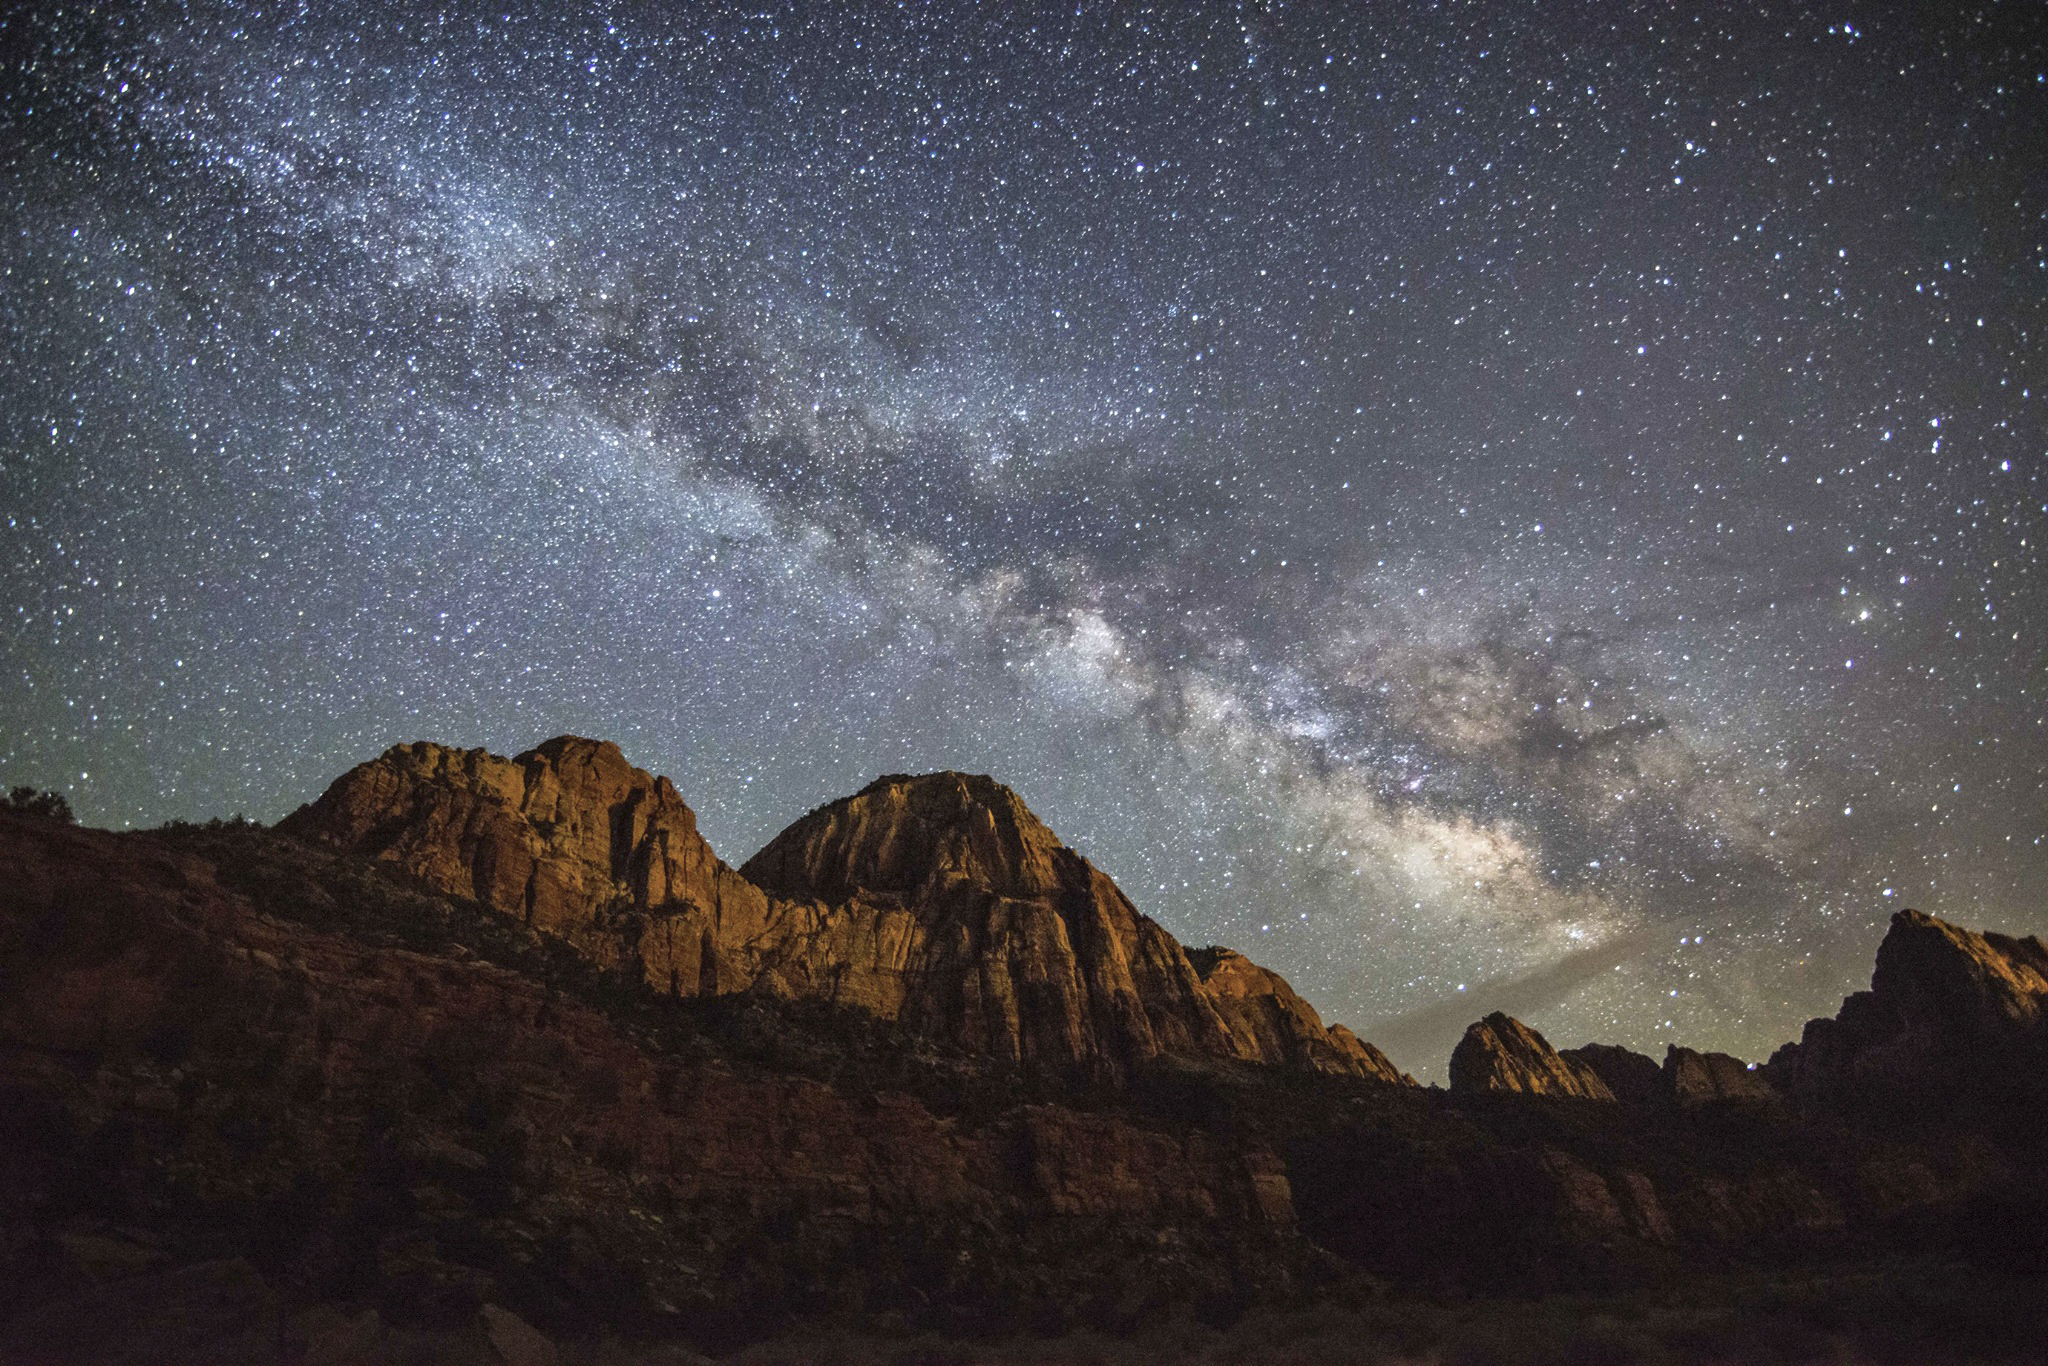 Zion Canyon at Night with Milky Way